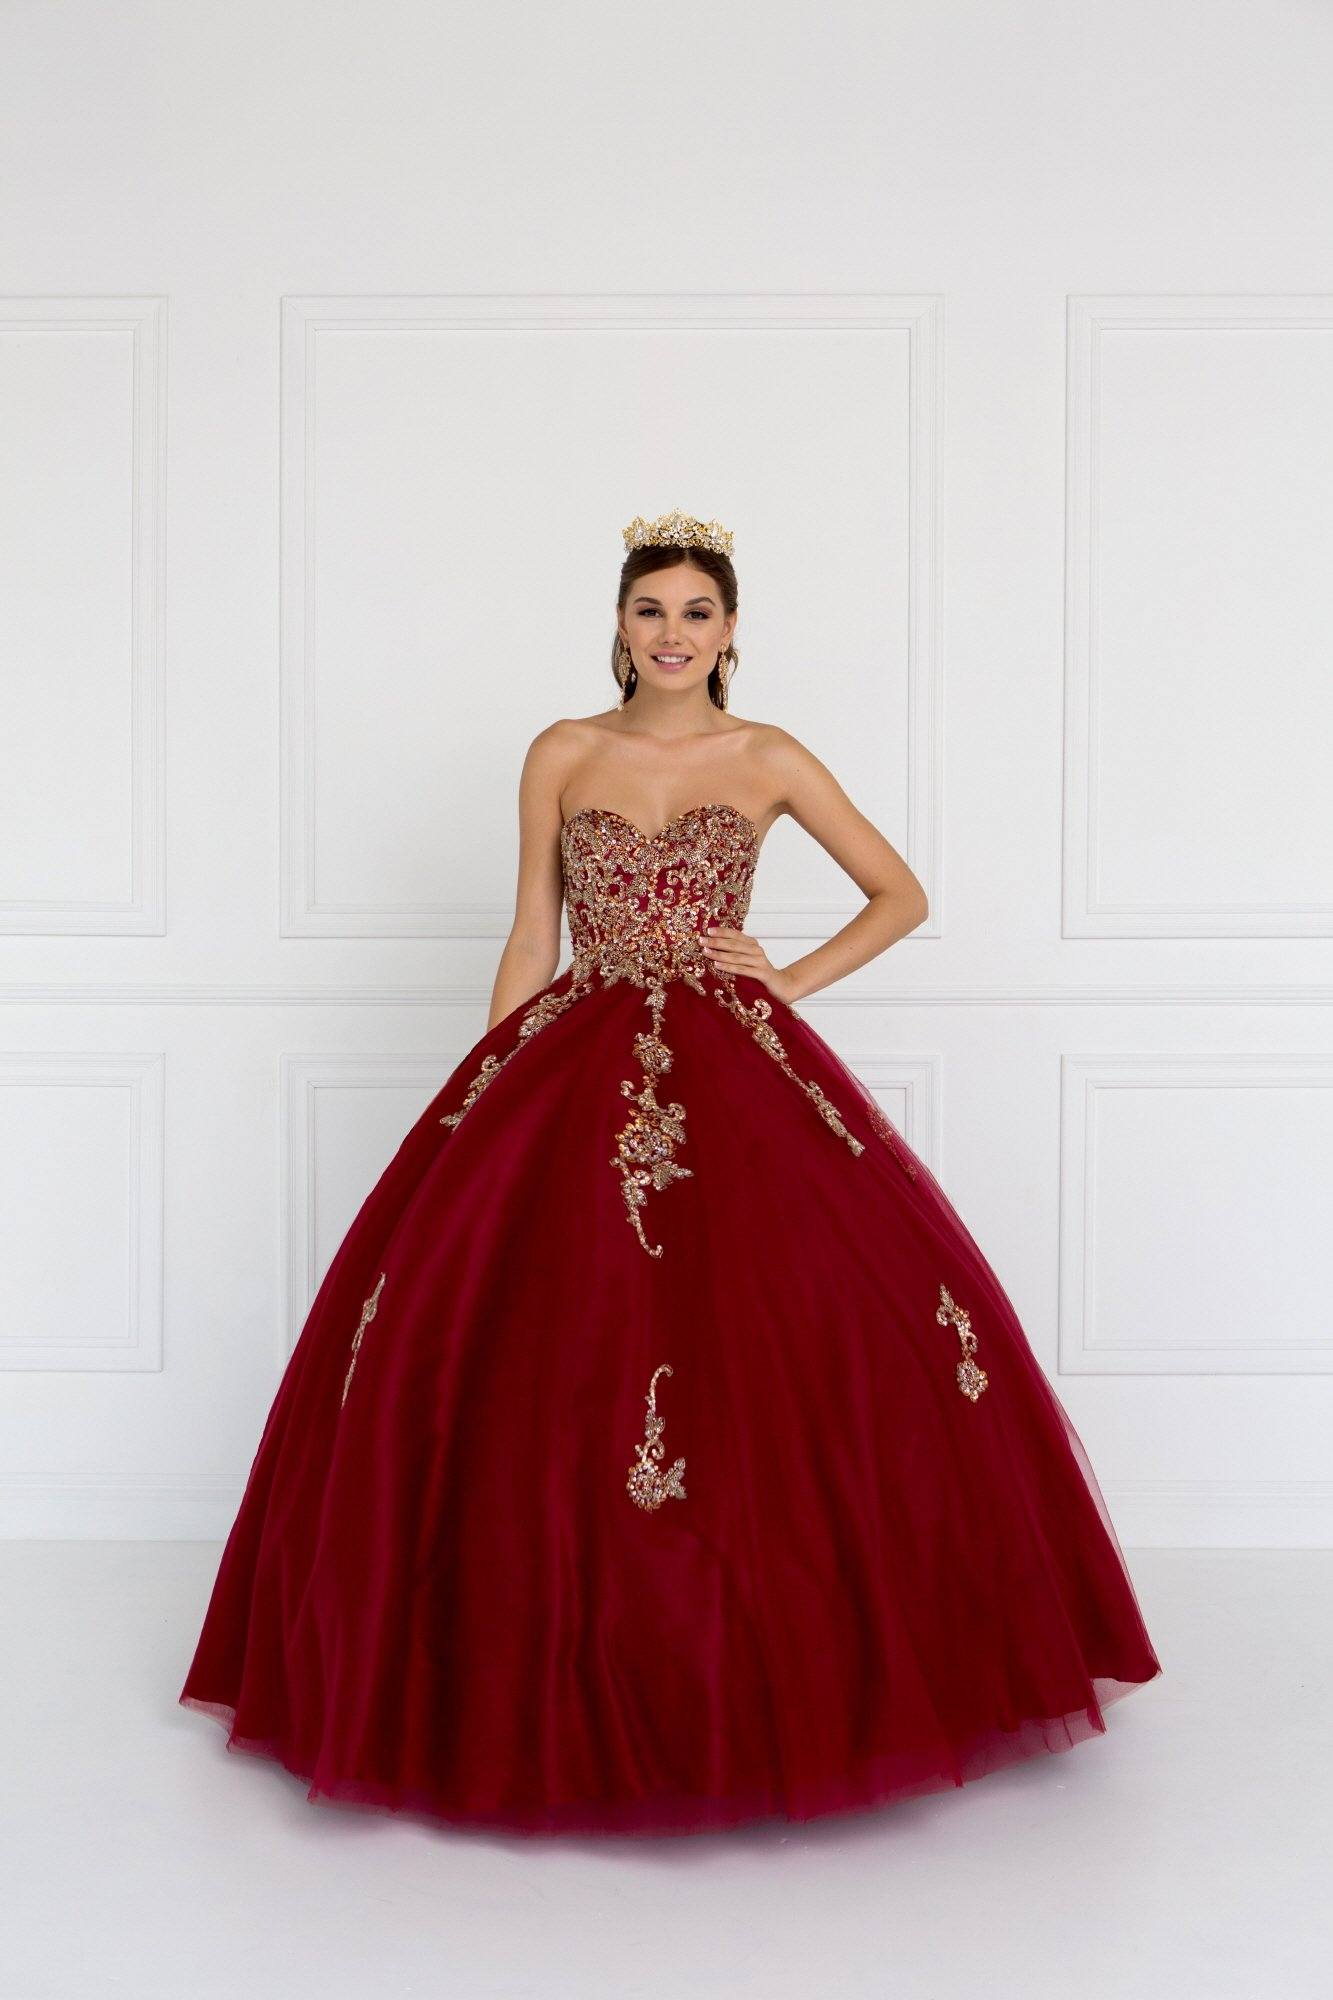 Strapless burgundy ball gown dress gls 1560 – Simply Fab Dress